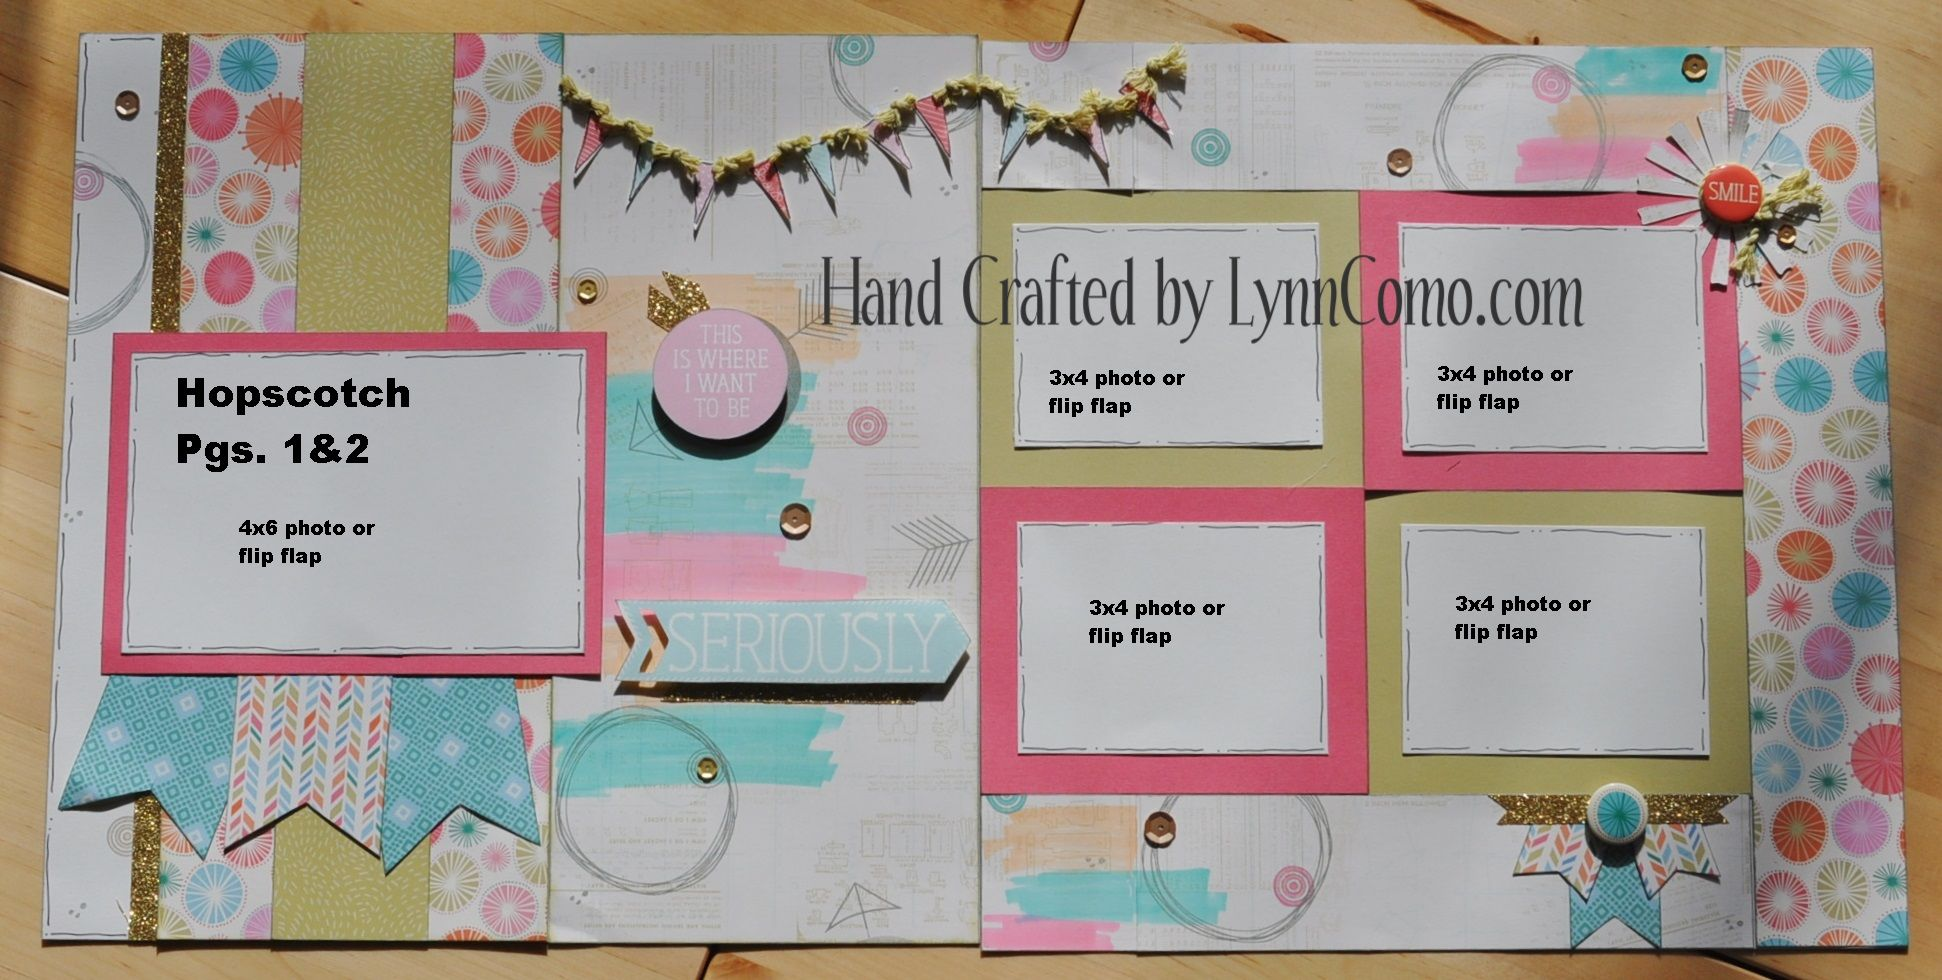 Scrapbook ideas and themes - Ctmh Hopscotch Layout By Lynn Como Ctmh Layout